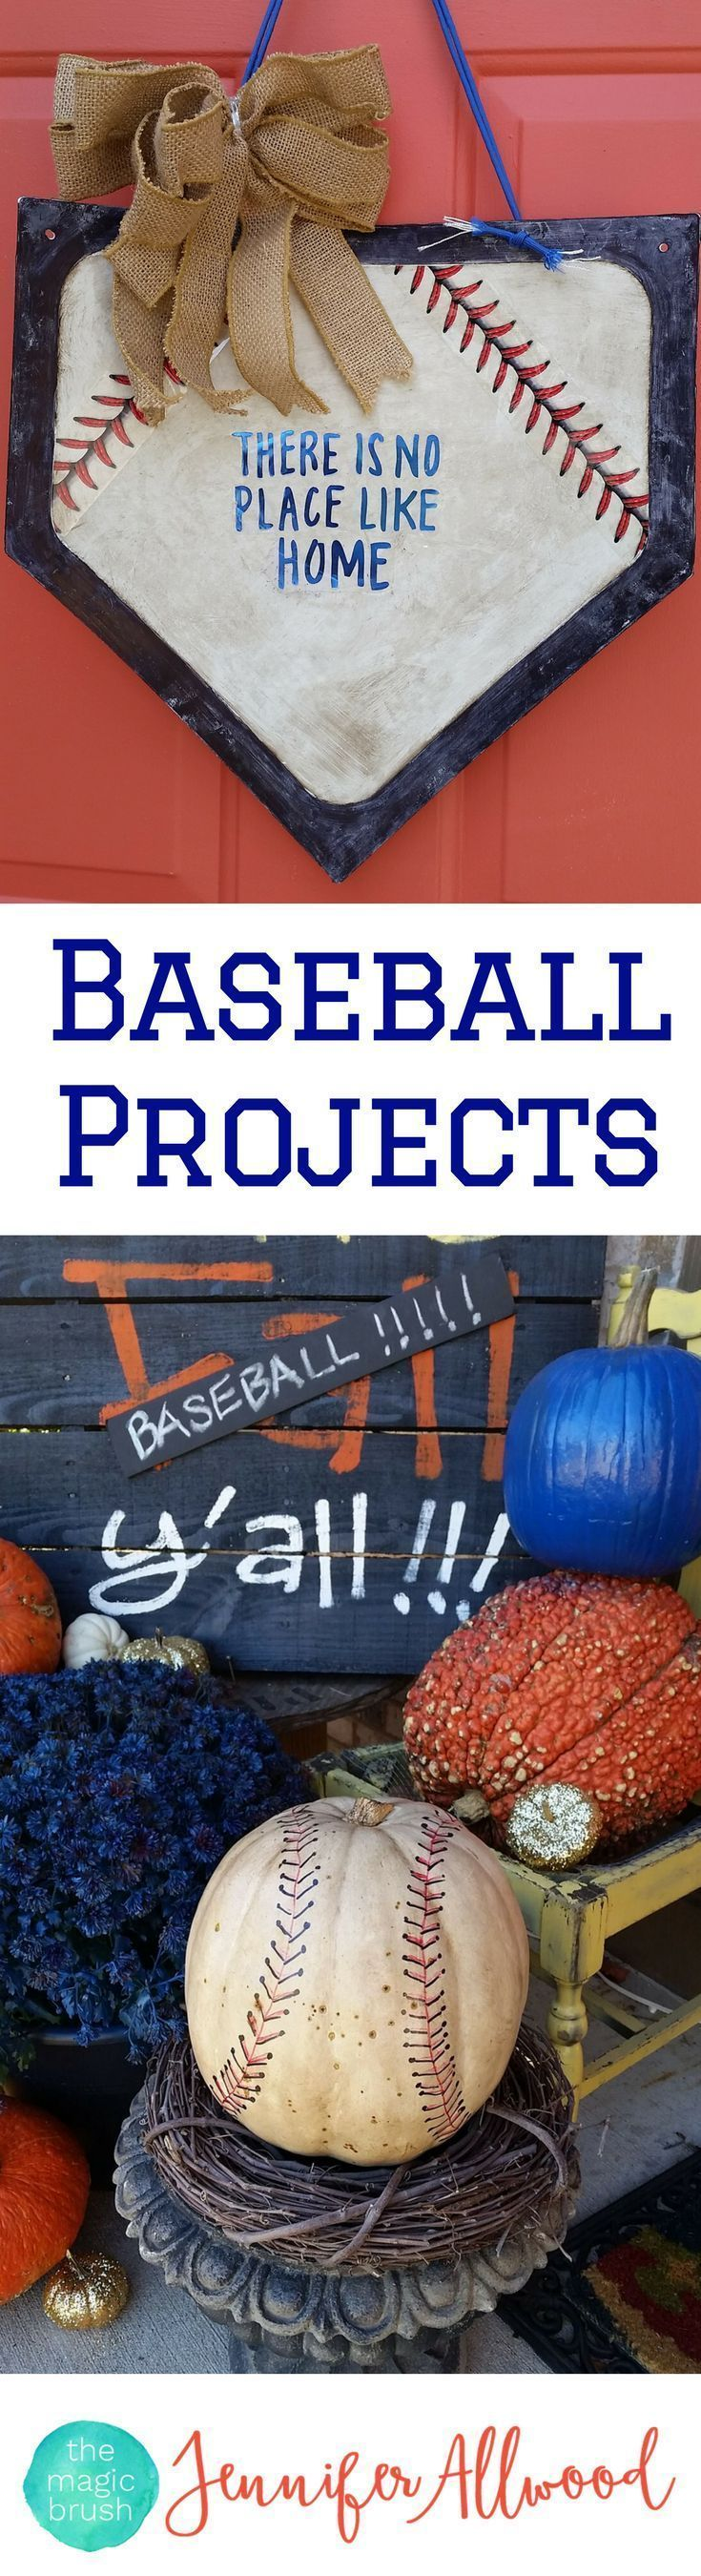 DIY Baseball Projects and Baseball Decor by theMagicBrushinc.com Fun ideas for door and porch decorations, baseball pumpkins,  baseball-themed bedrooms and more! By Jennifer Allwood #diy #diyhomedecor #homedecor #jenniferallwood